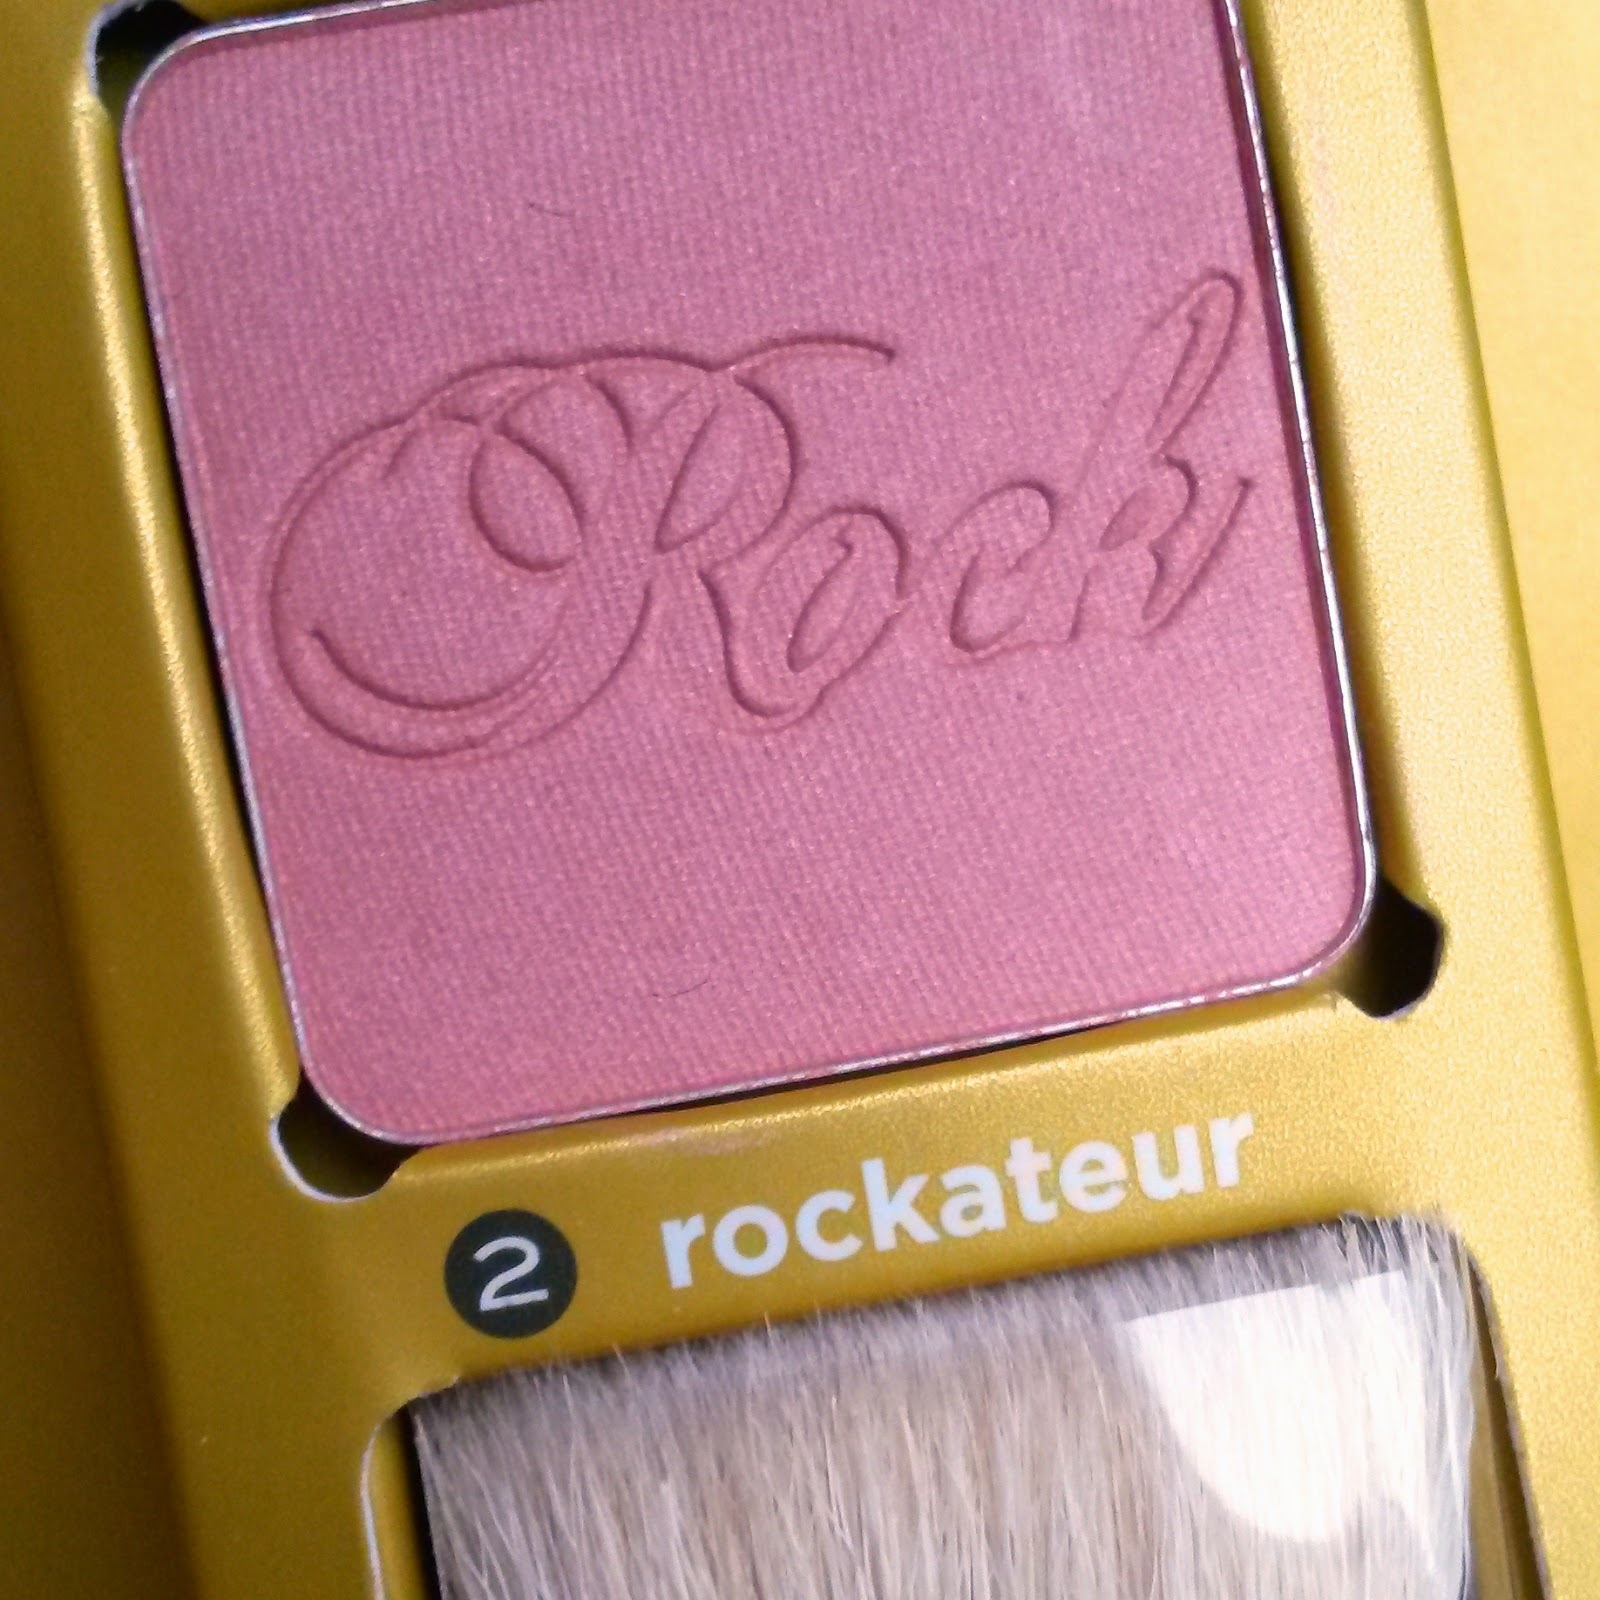 Benefit Rockateur Review